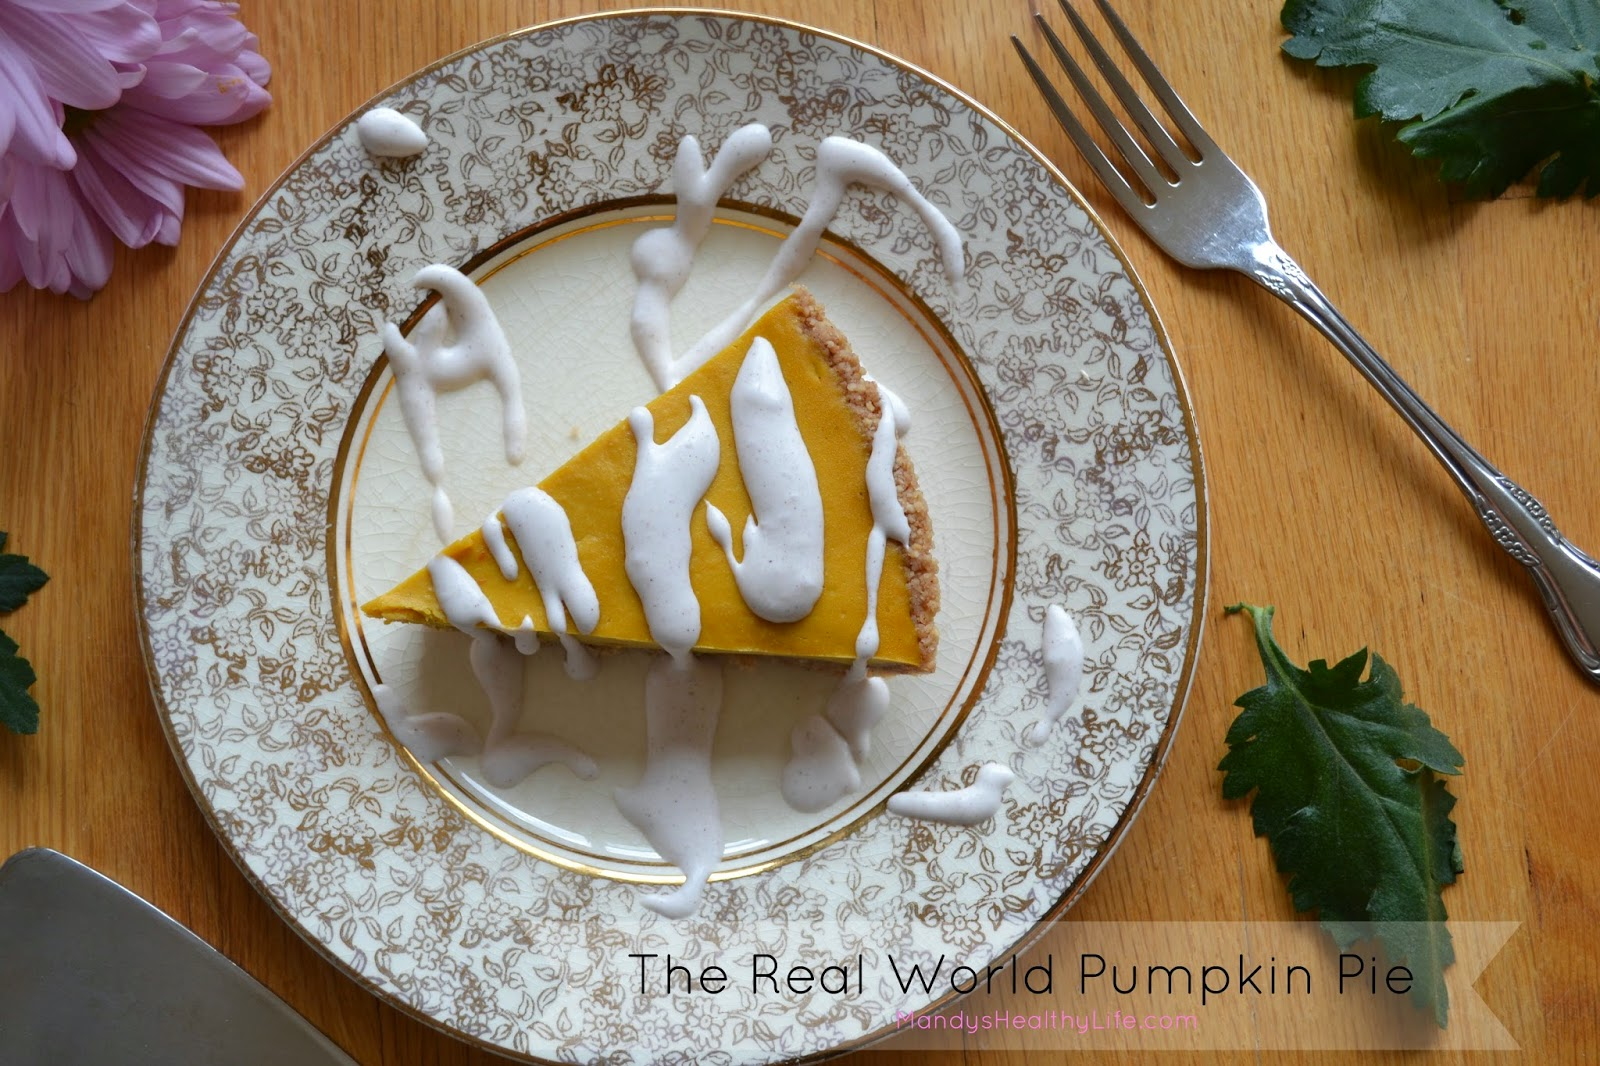 THE REAL WORLD PUMPKIN PIE - Mandy's Healthy Life